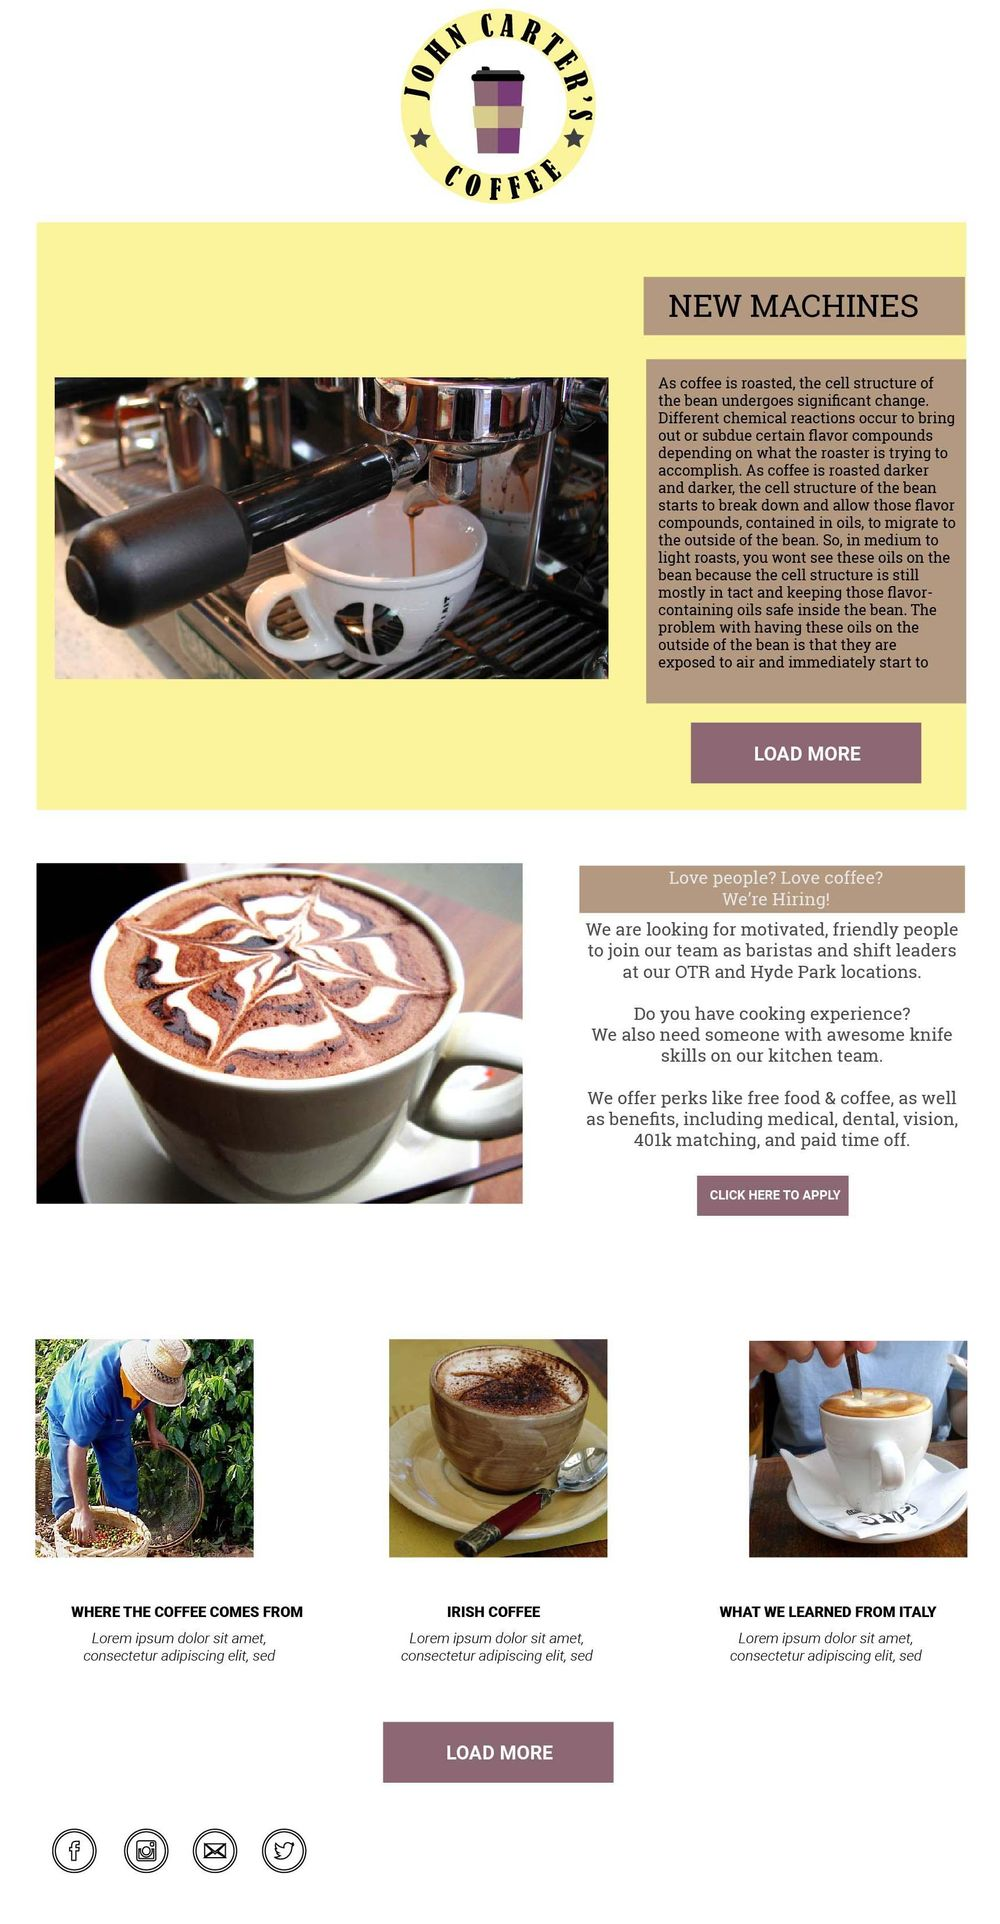 John Carter's Coffee Shop - image 2 - student project